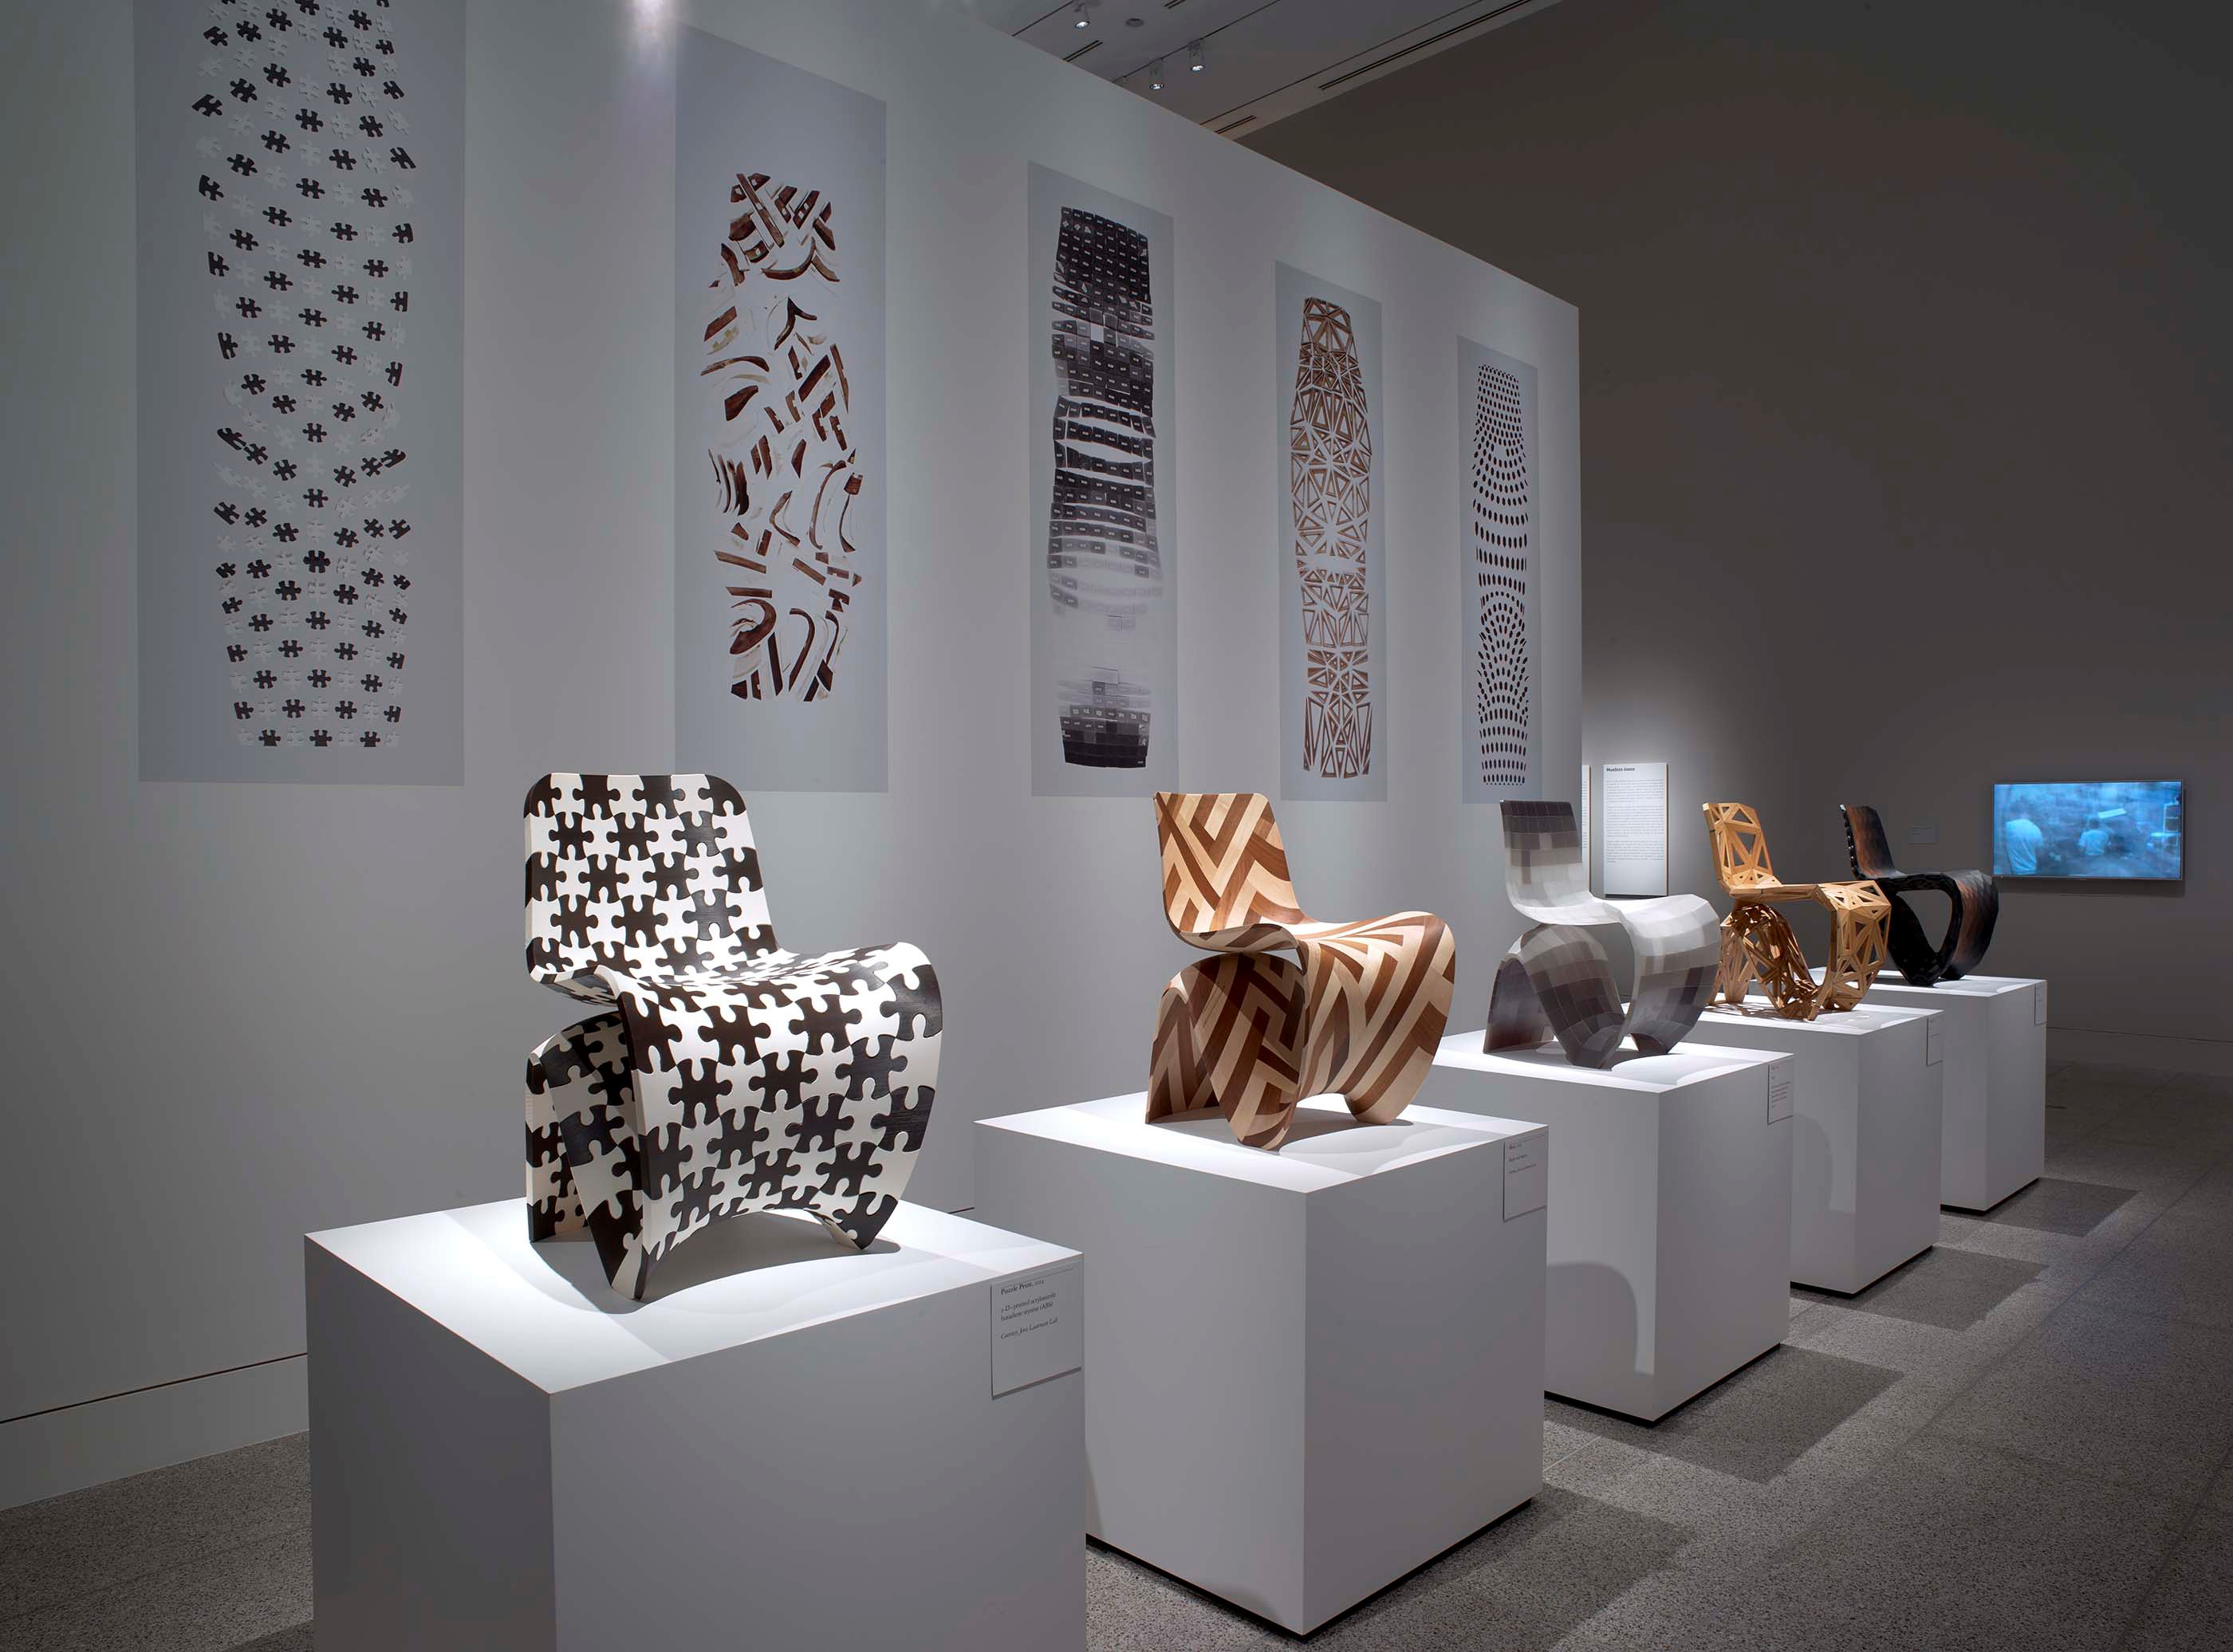 Installation view of Joris Laarman Lab: Design in the Digital Age - Makerchairs